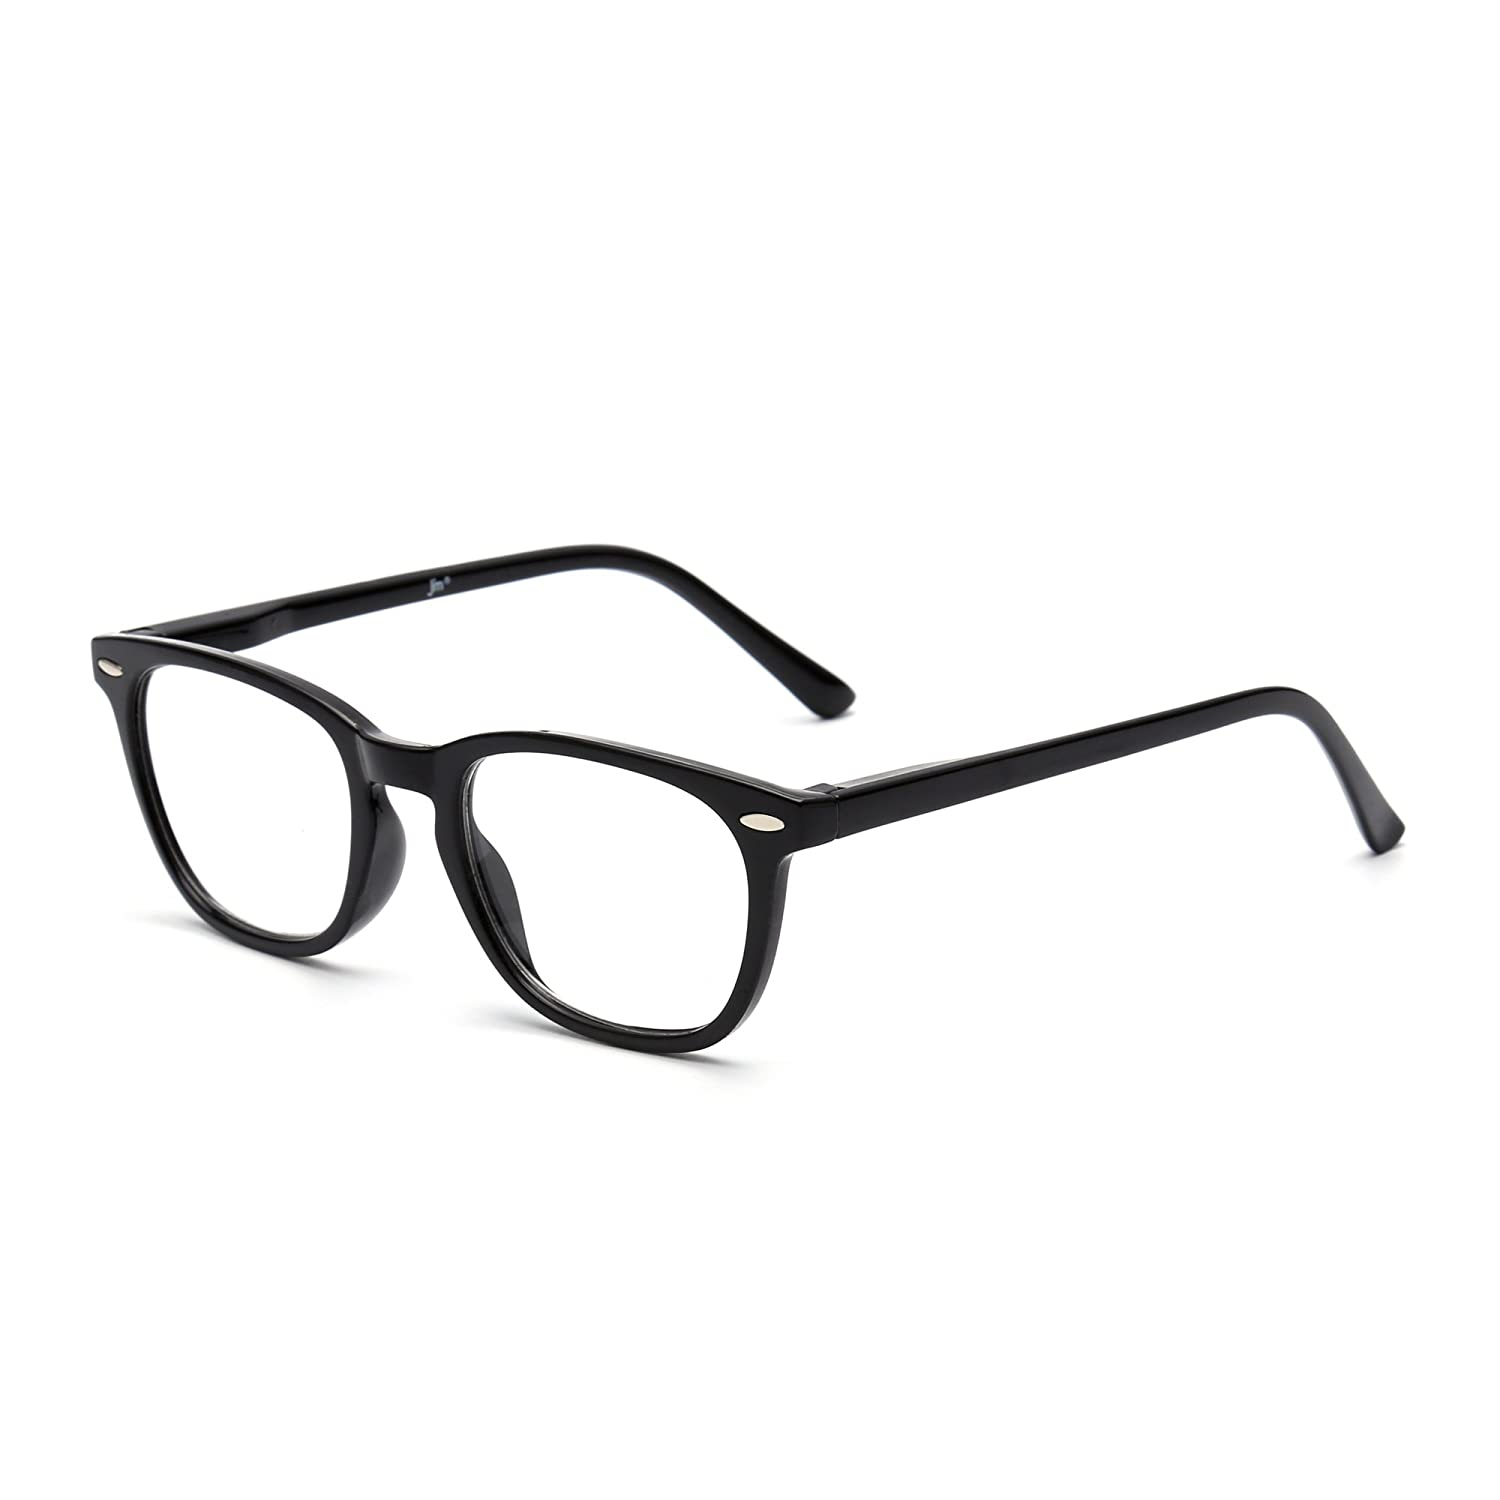 ed05477f824 Amazon.com  Retro Reading Glasses Spring Hinge Black Eyeglasses Readers Men Women  Eyewear for Reading +1.0  Health   Personal Care